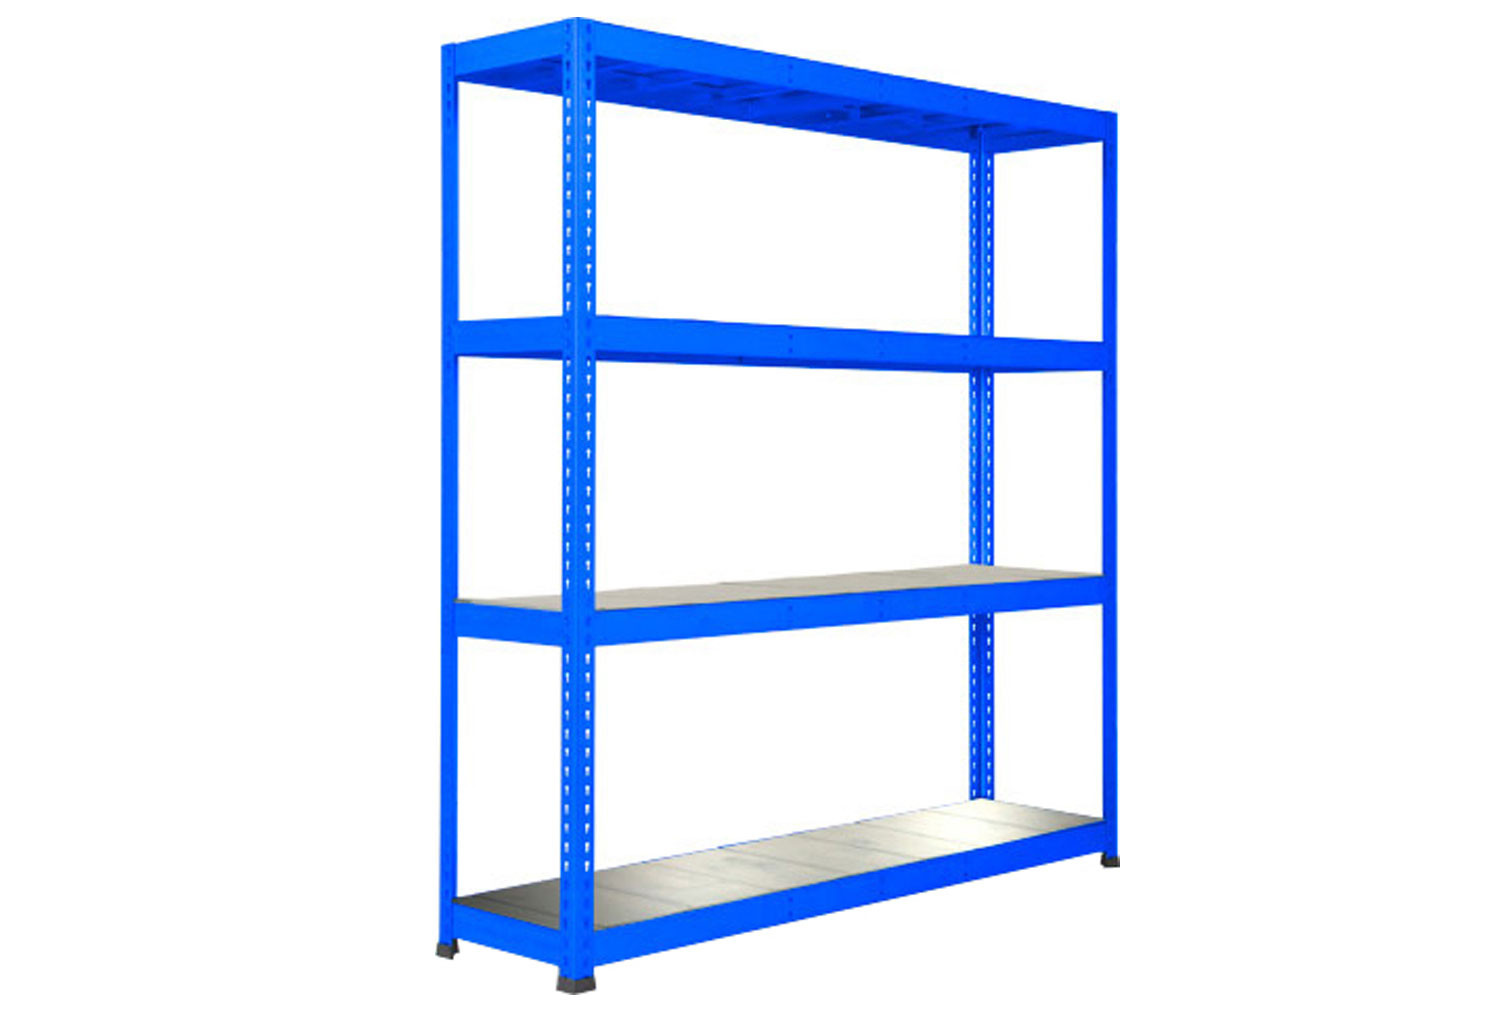 Rapid 1 Heavy Duty Shelving With 4 Galvanized Shelves 1830wx2440h (Blue)